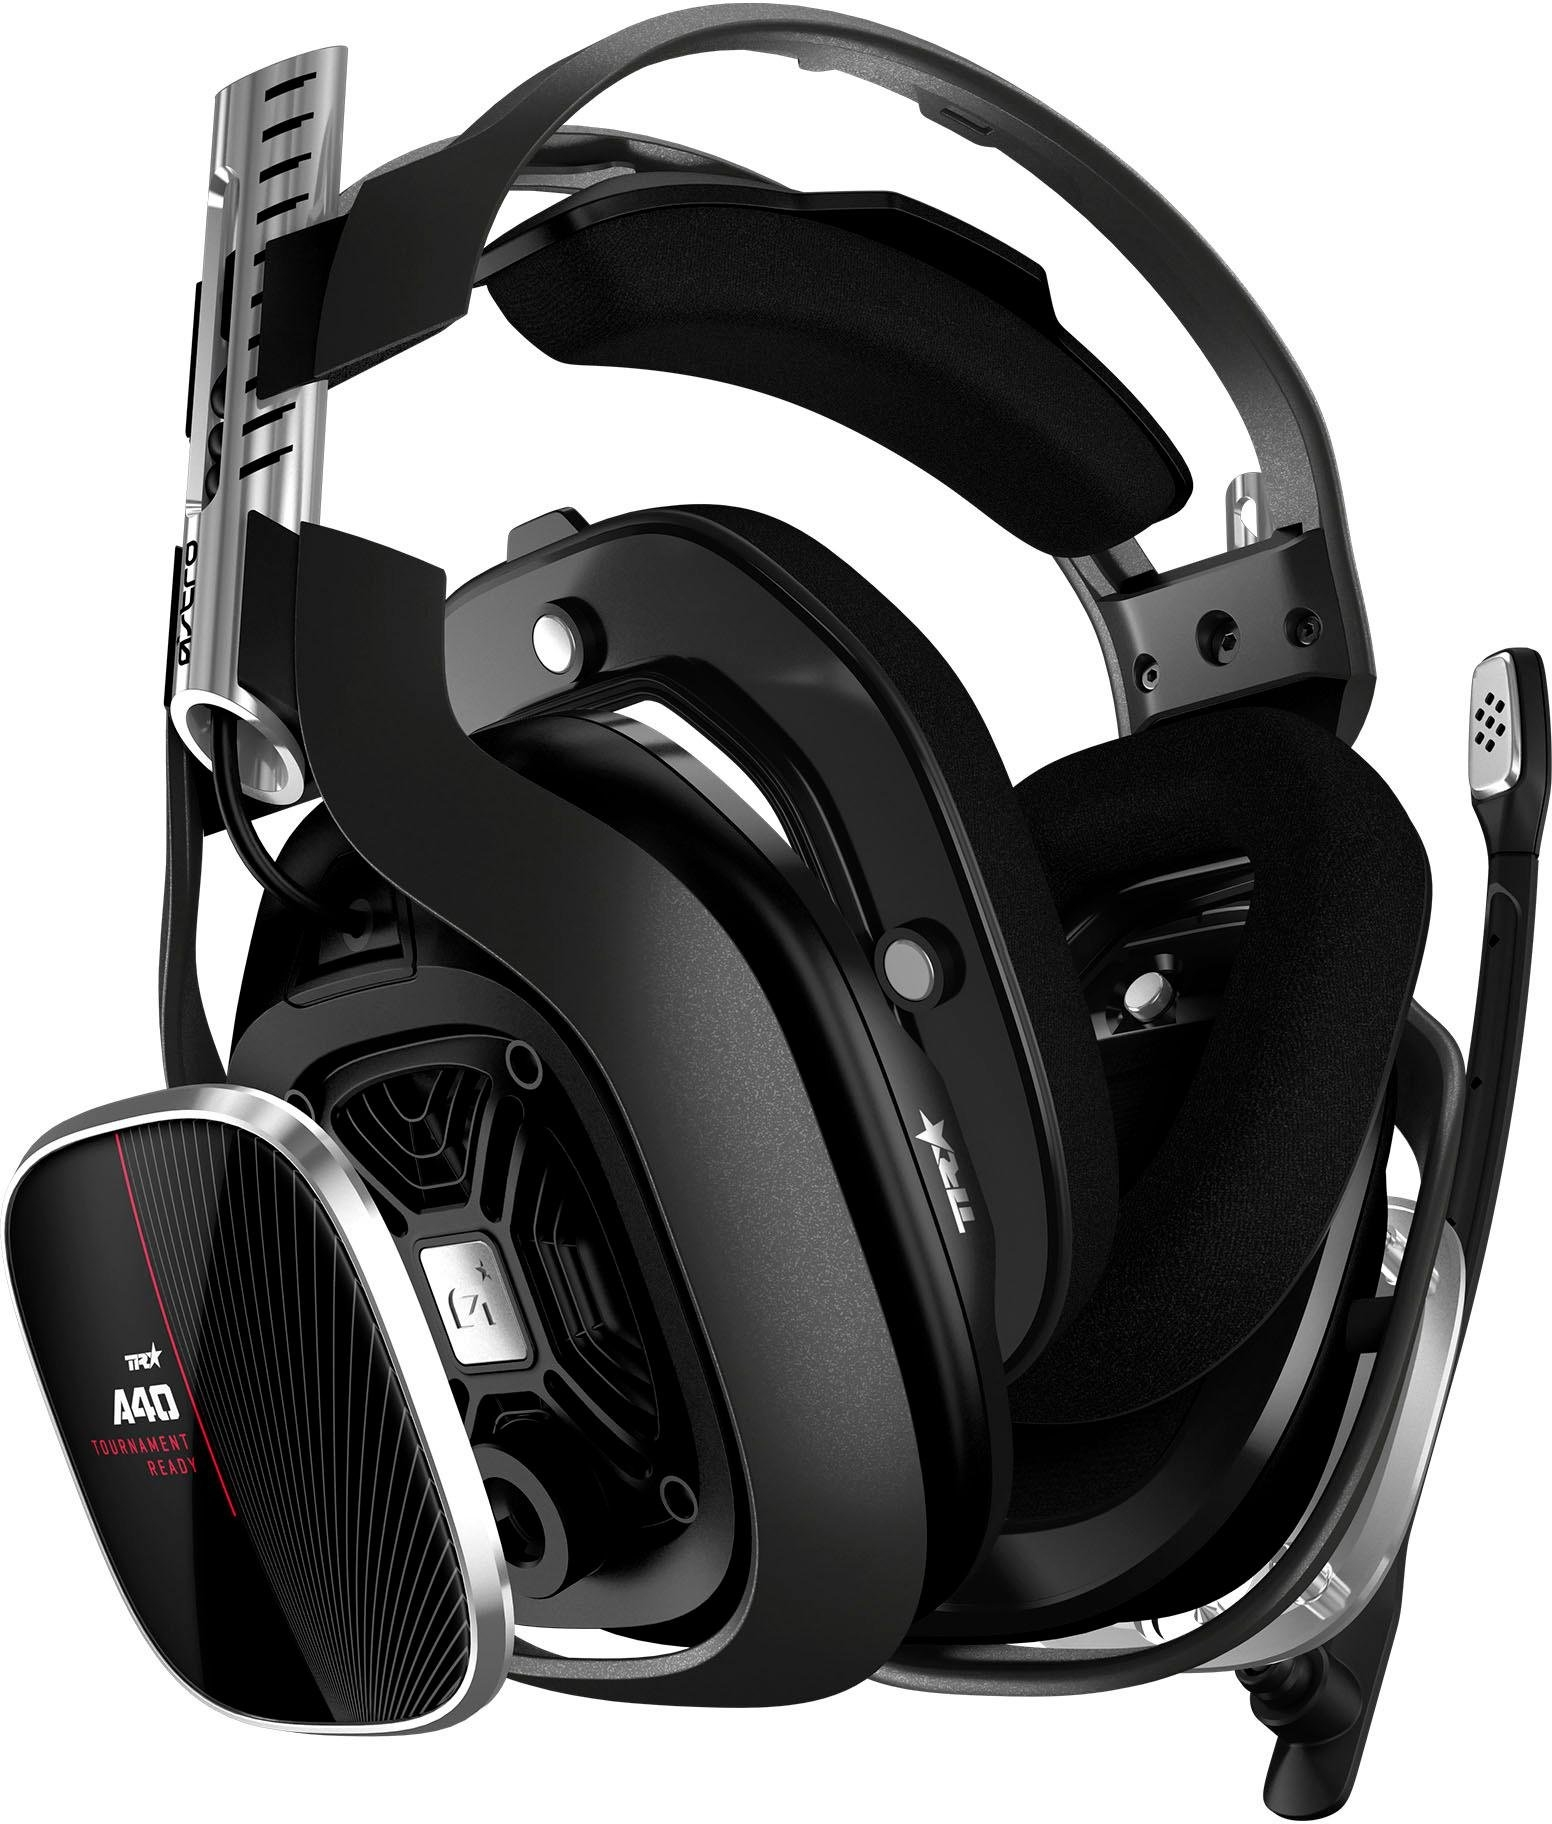 astro a40 tr headset mixamp pro tr nieuw xbox one pc mac gamingheadset met snoer. Black Bedroom Furniture Sets. Home Design Ideas